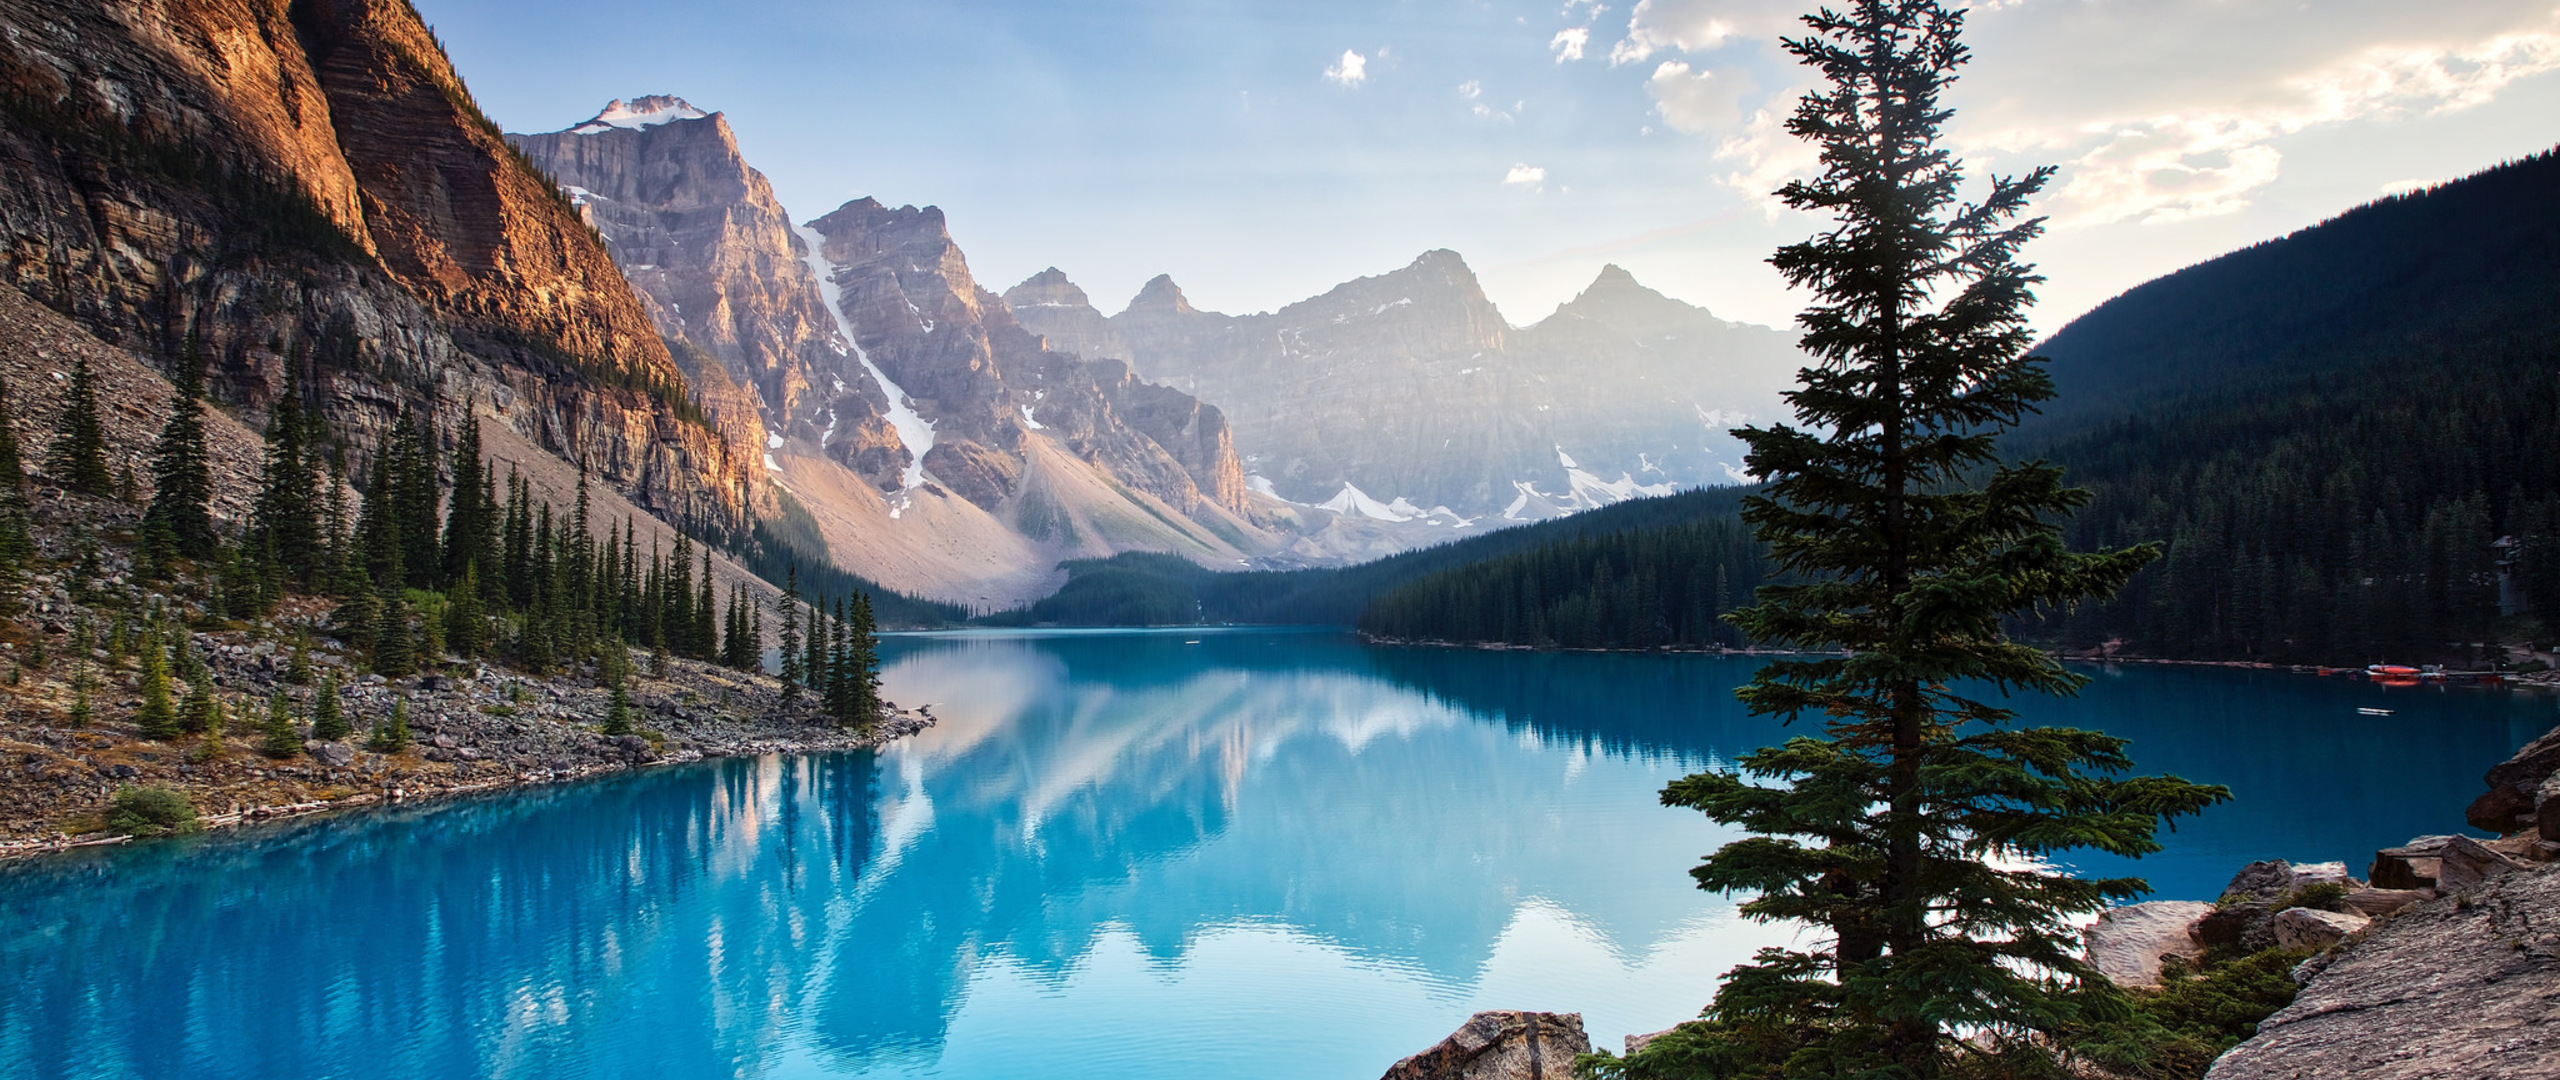 2560x1080 moraine lake south channel 2560x1080 resolution hd 4k wallpapers  images  backgrounds